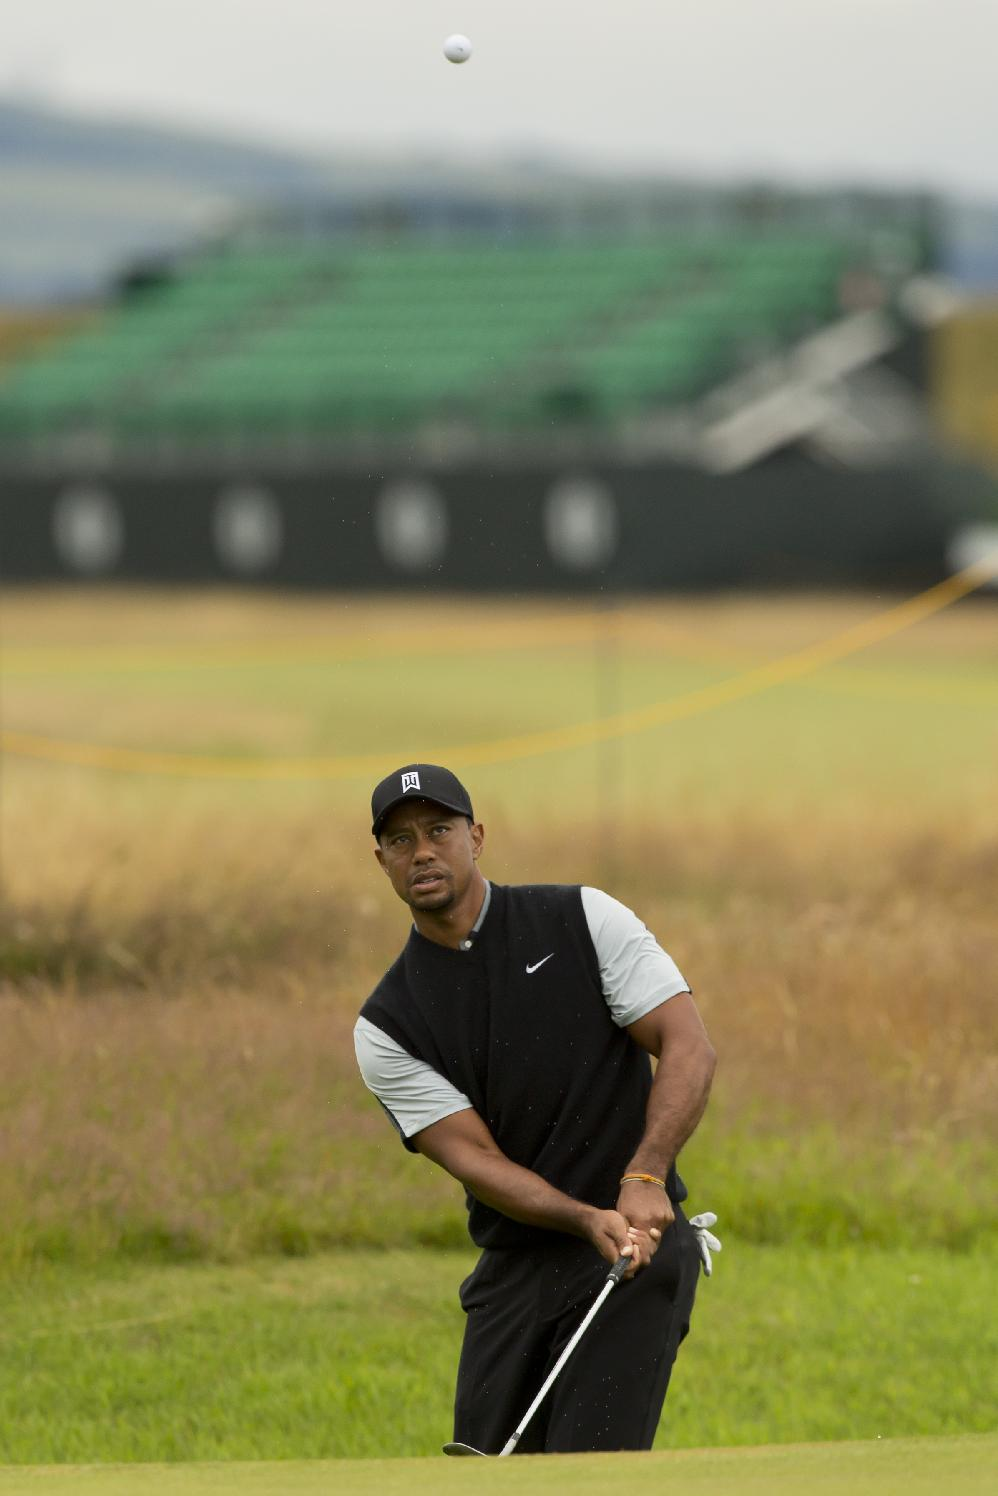 Tiger Woods of the US plays a shot to the 16th green during a practice round at Royal Liverpool Golf Club prior to the start of the British Open Golf Championship, in Hoylake, England, Saturday, July 12, 2014. The 2014 Open Championship starts on Thursday, July 17